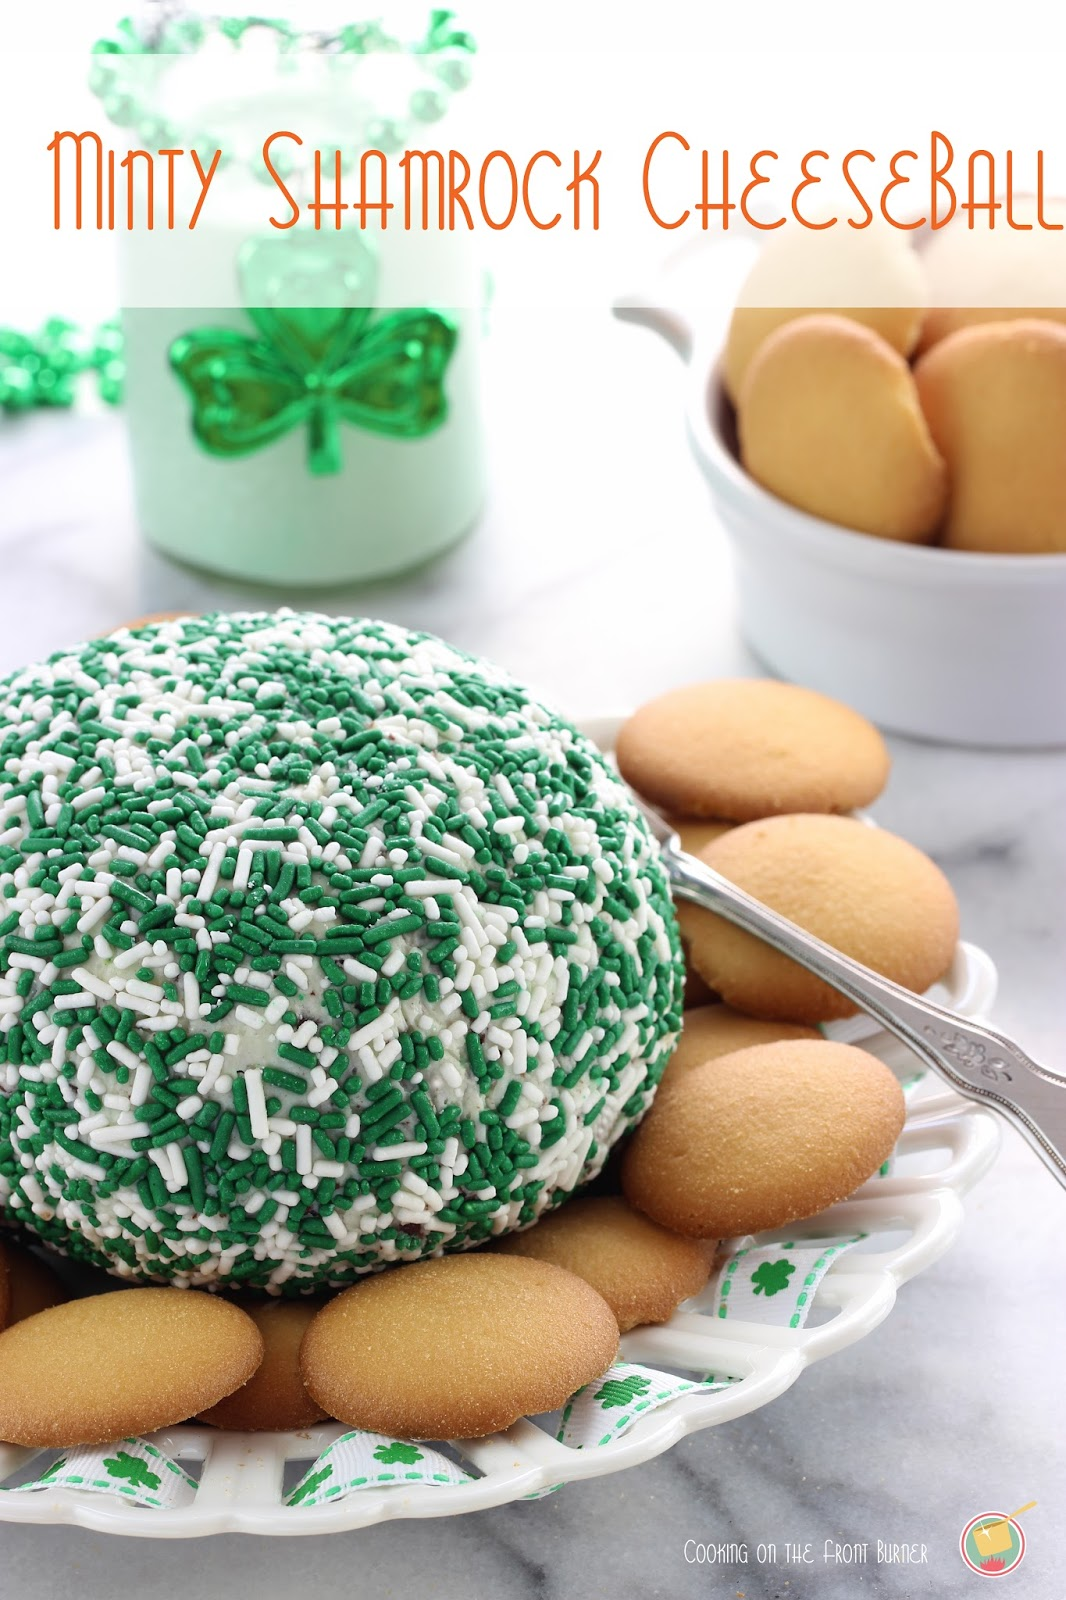 Minty Shamrock Cheeseball | Cooking on the Front Burner #stpattysday #shamrockdessert